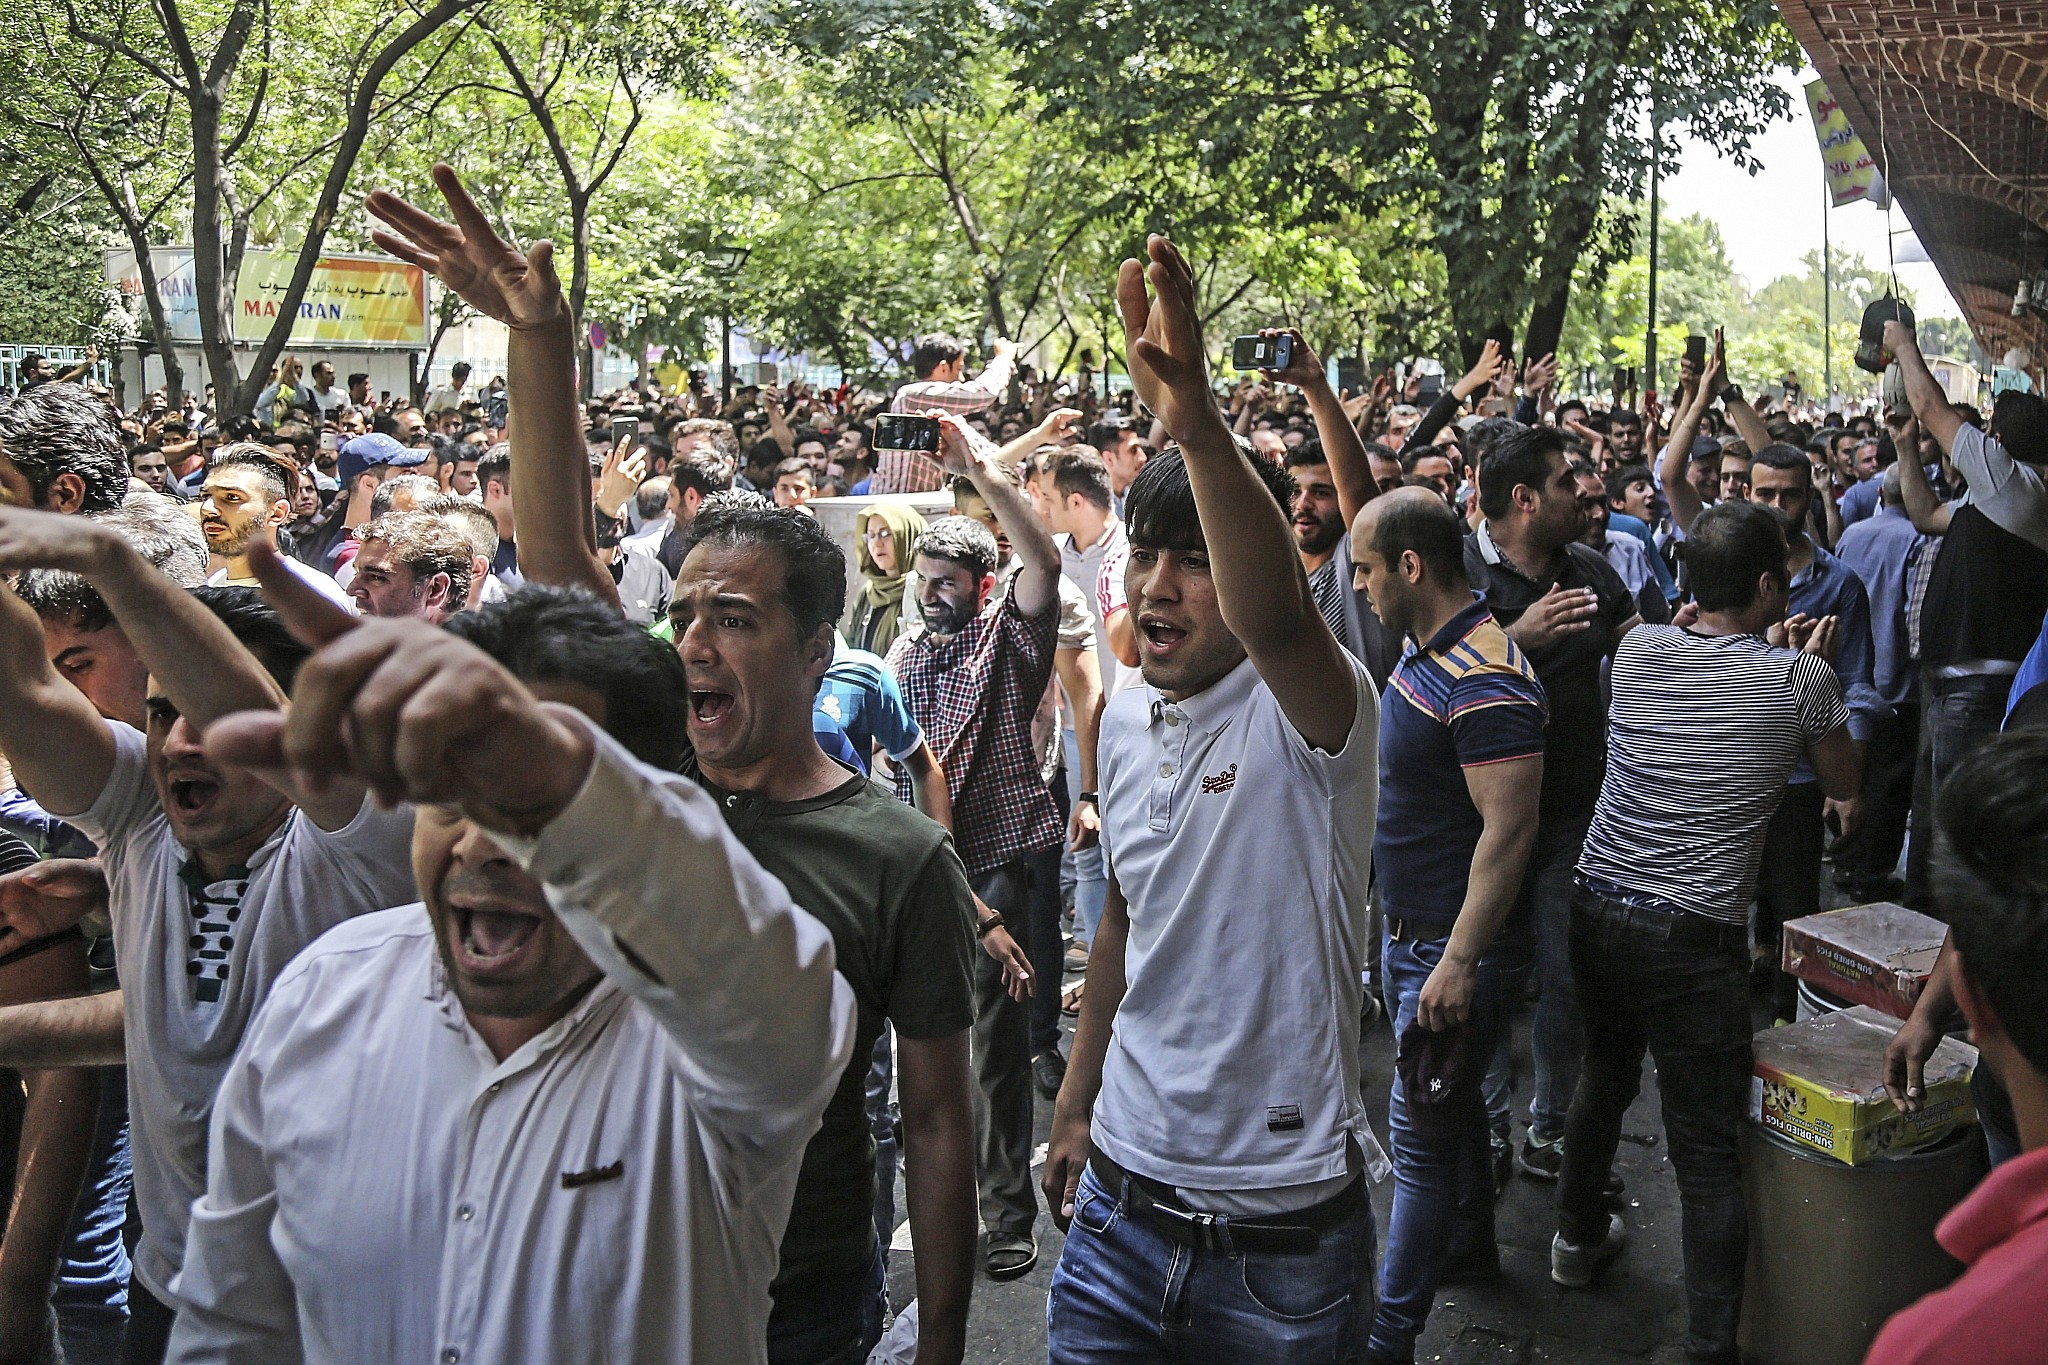 Iranians chant 'death to America' on eve of biting sanctions